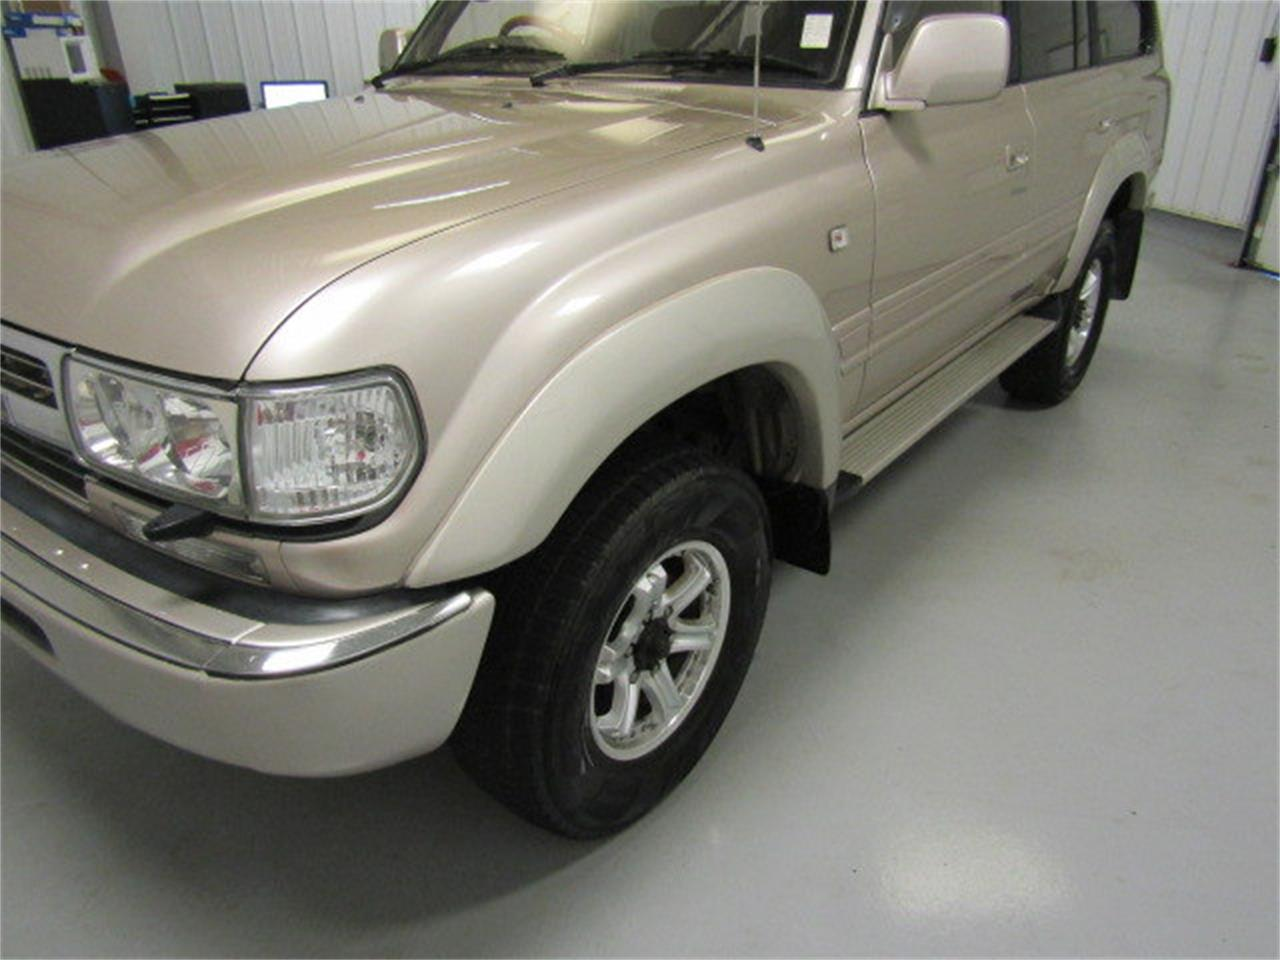 Large Picture of 1991 Land Cruiser FJ Offered by Duncan Imports & Classic Cars - LI66